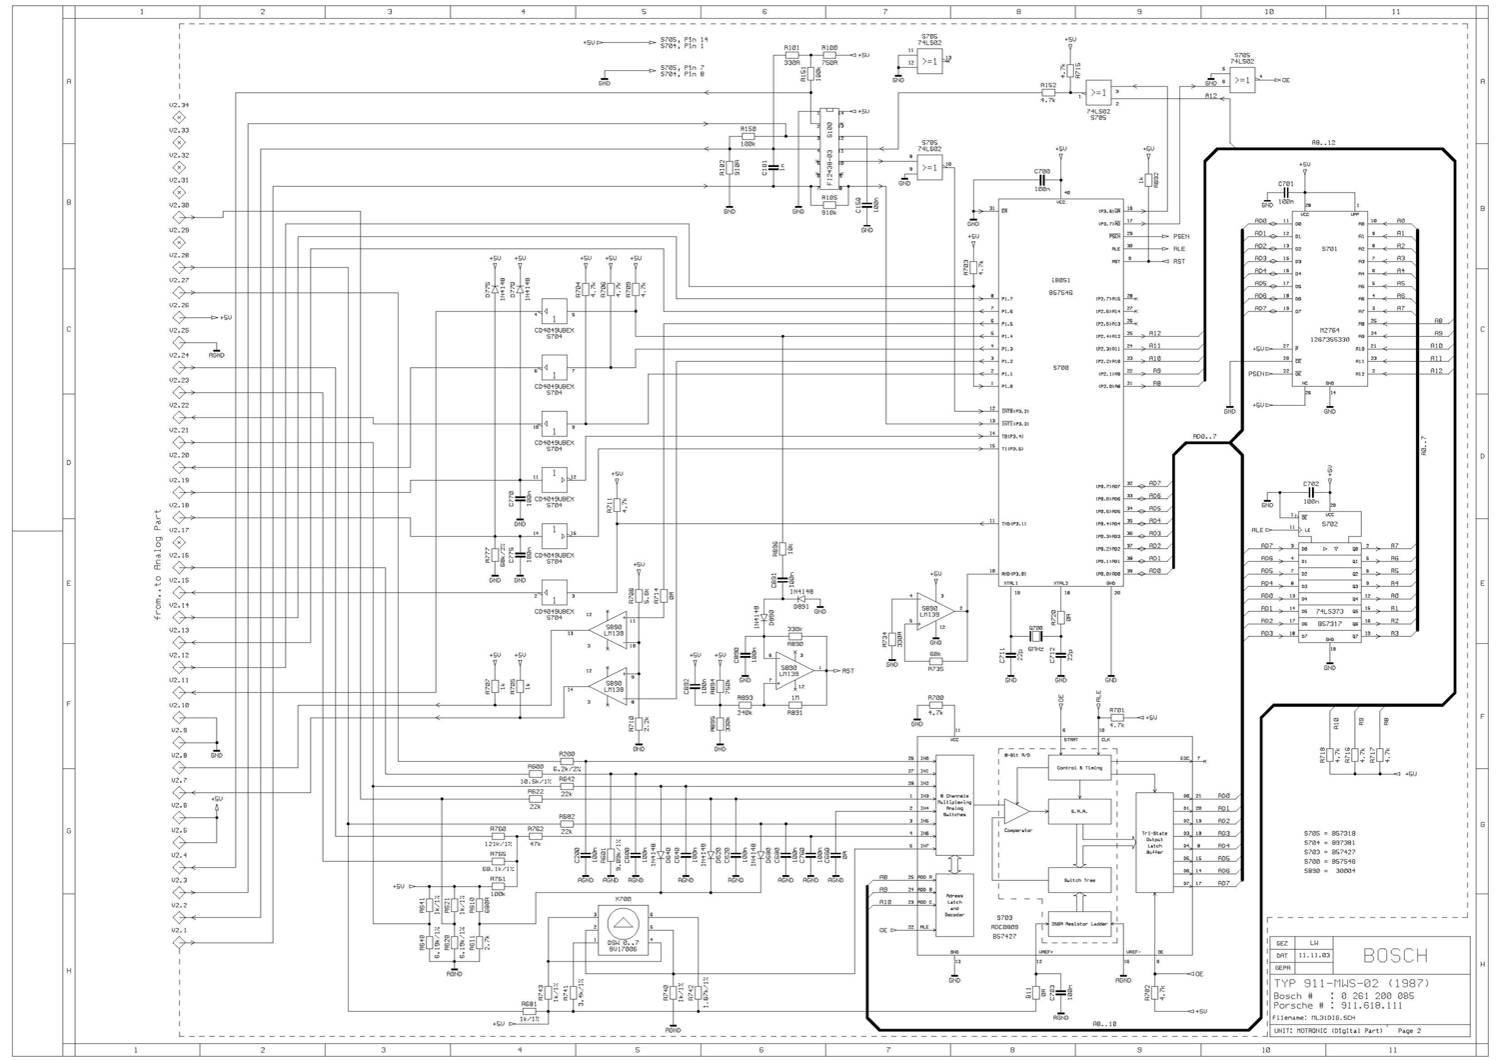 dme wiring diagram